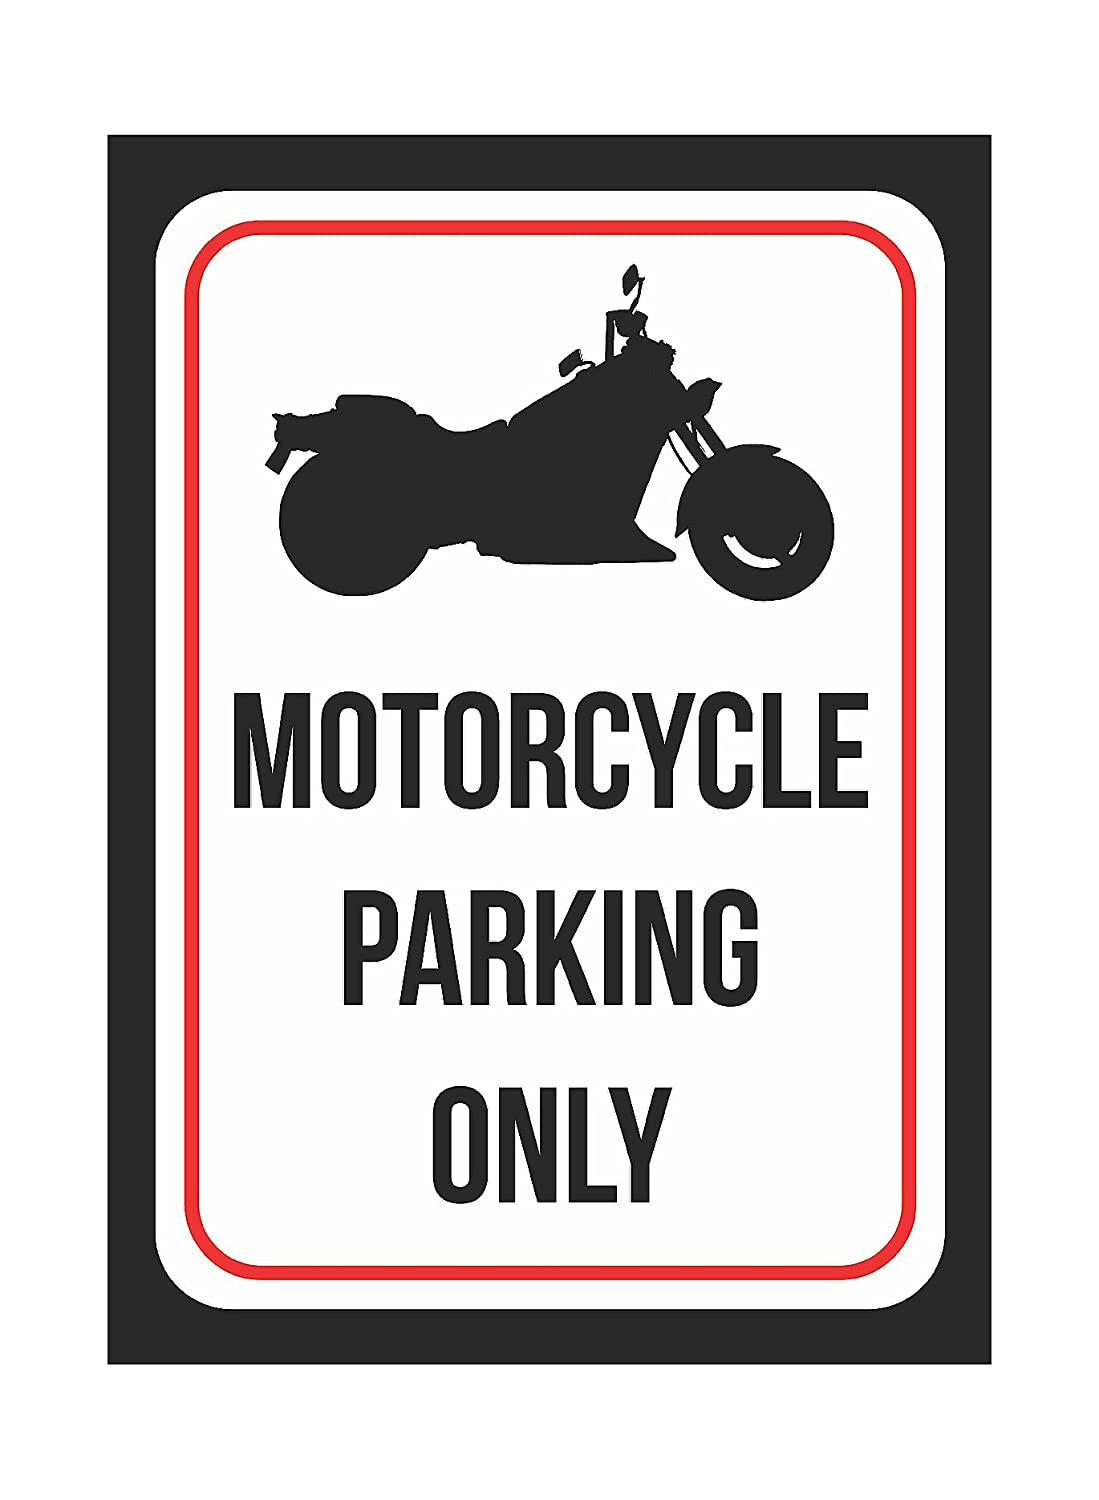 7.5x10.5 Inch Motorcycle Parking Only Print Black and White Black Metal Picture Symbol Small Sign 1 Pack of Signs